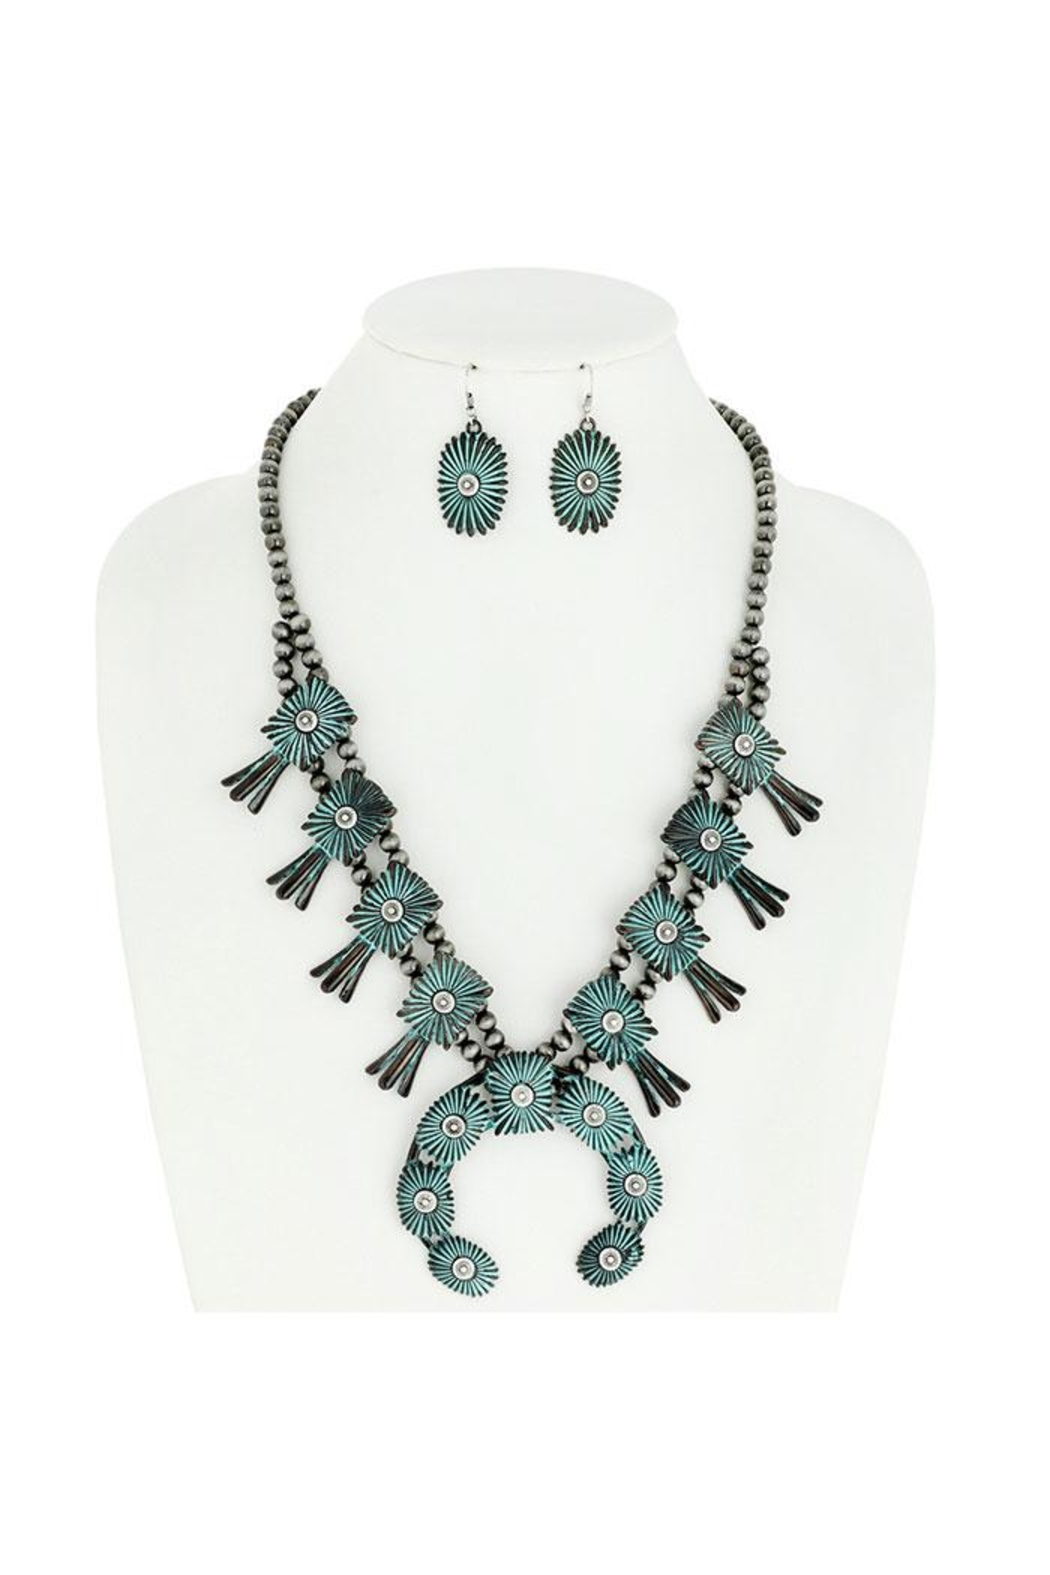 Something Special Squash Blossom Chunky Necklace Set - Main Image